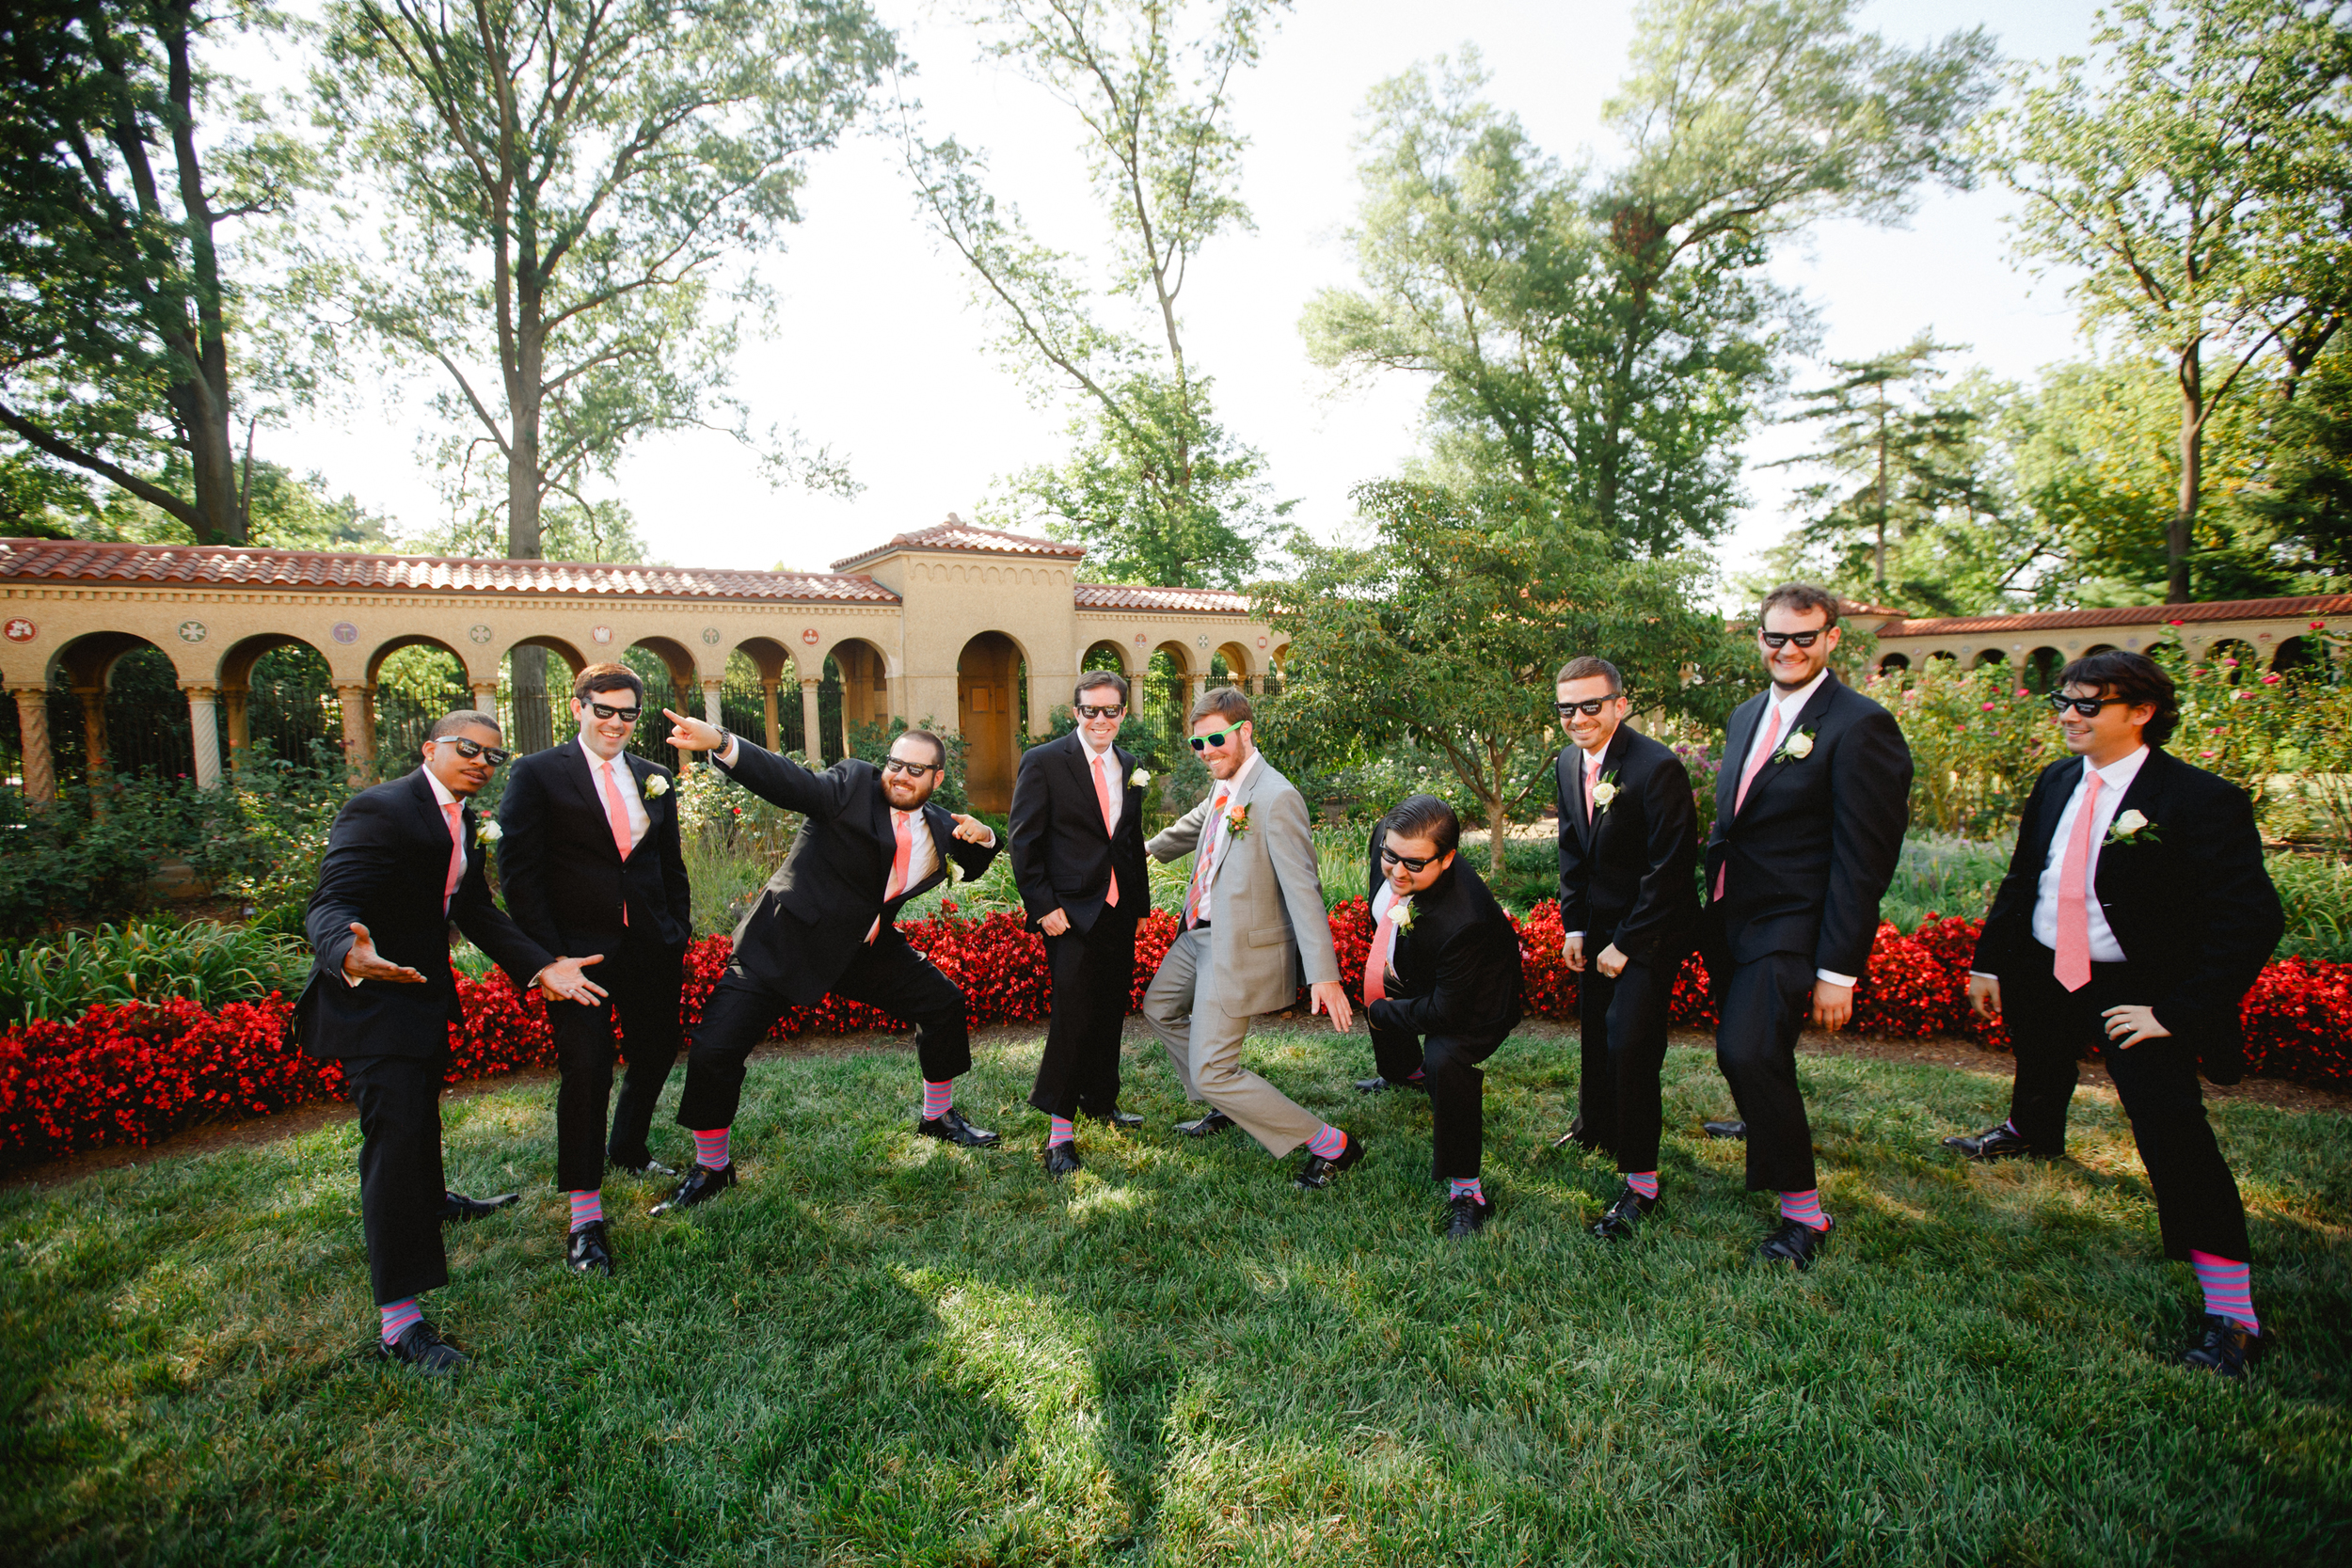 Vness-Photography-St-francis_washington-DC-Wedding-Jessica&Brian-262.jpg